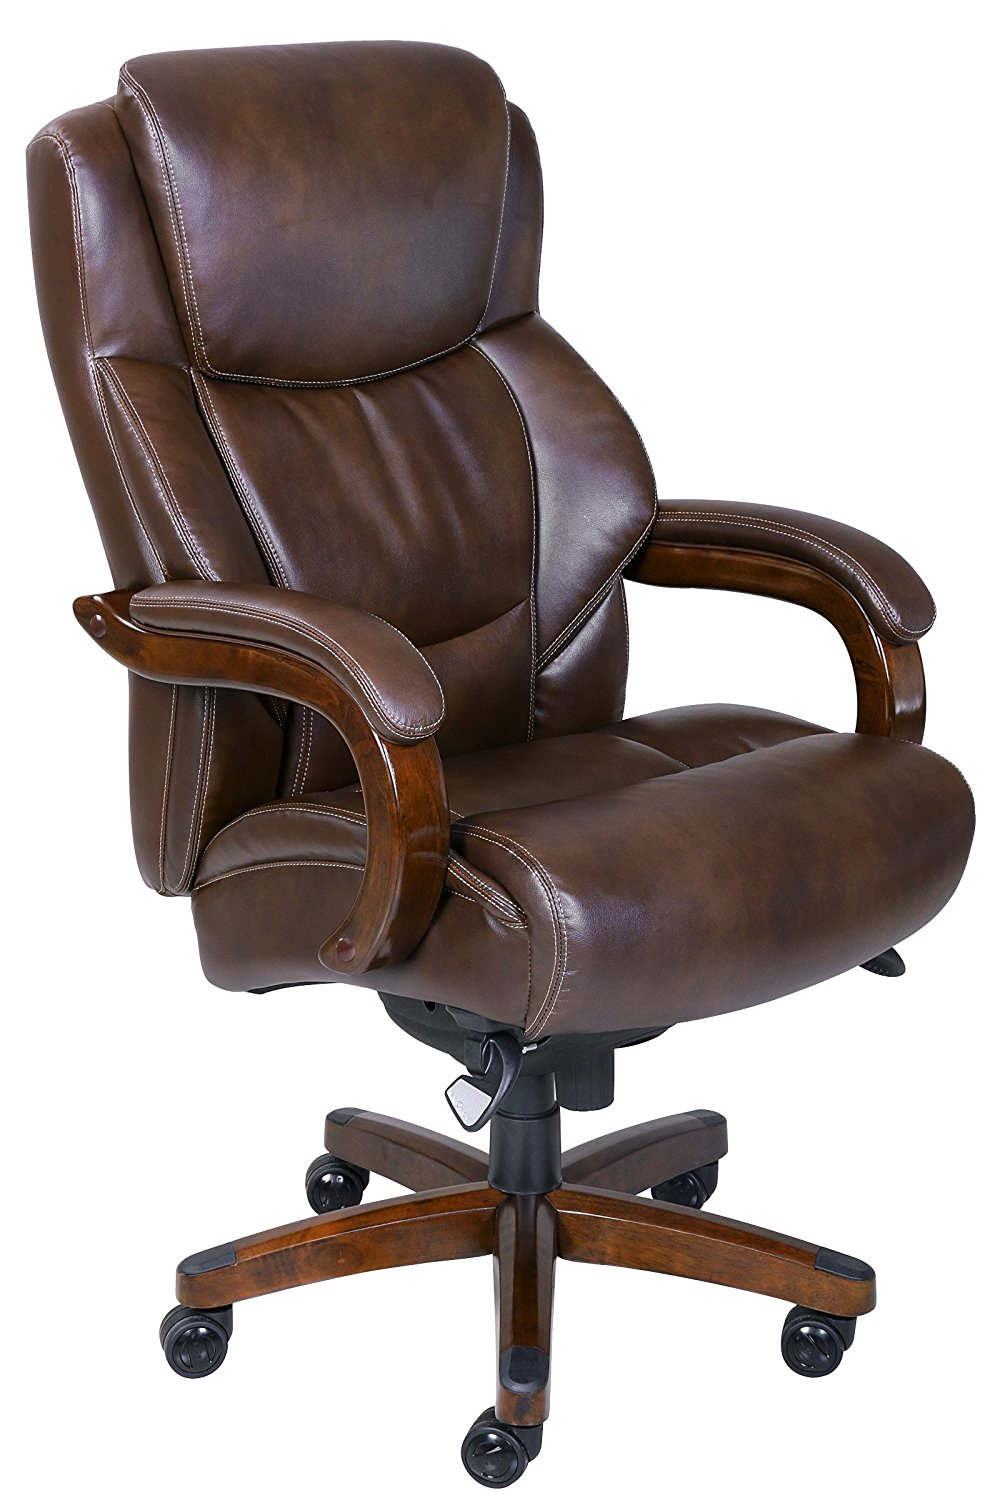 You Can Feel Confident In A Trusted Brand Like La Z Boy When Searching For High Quality And Comfortable Design An Office Chair